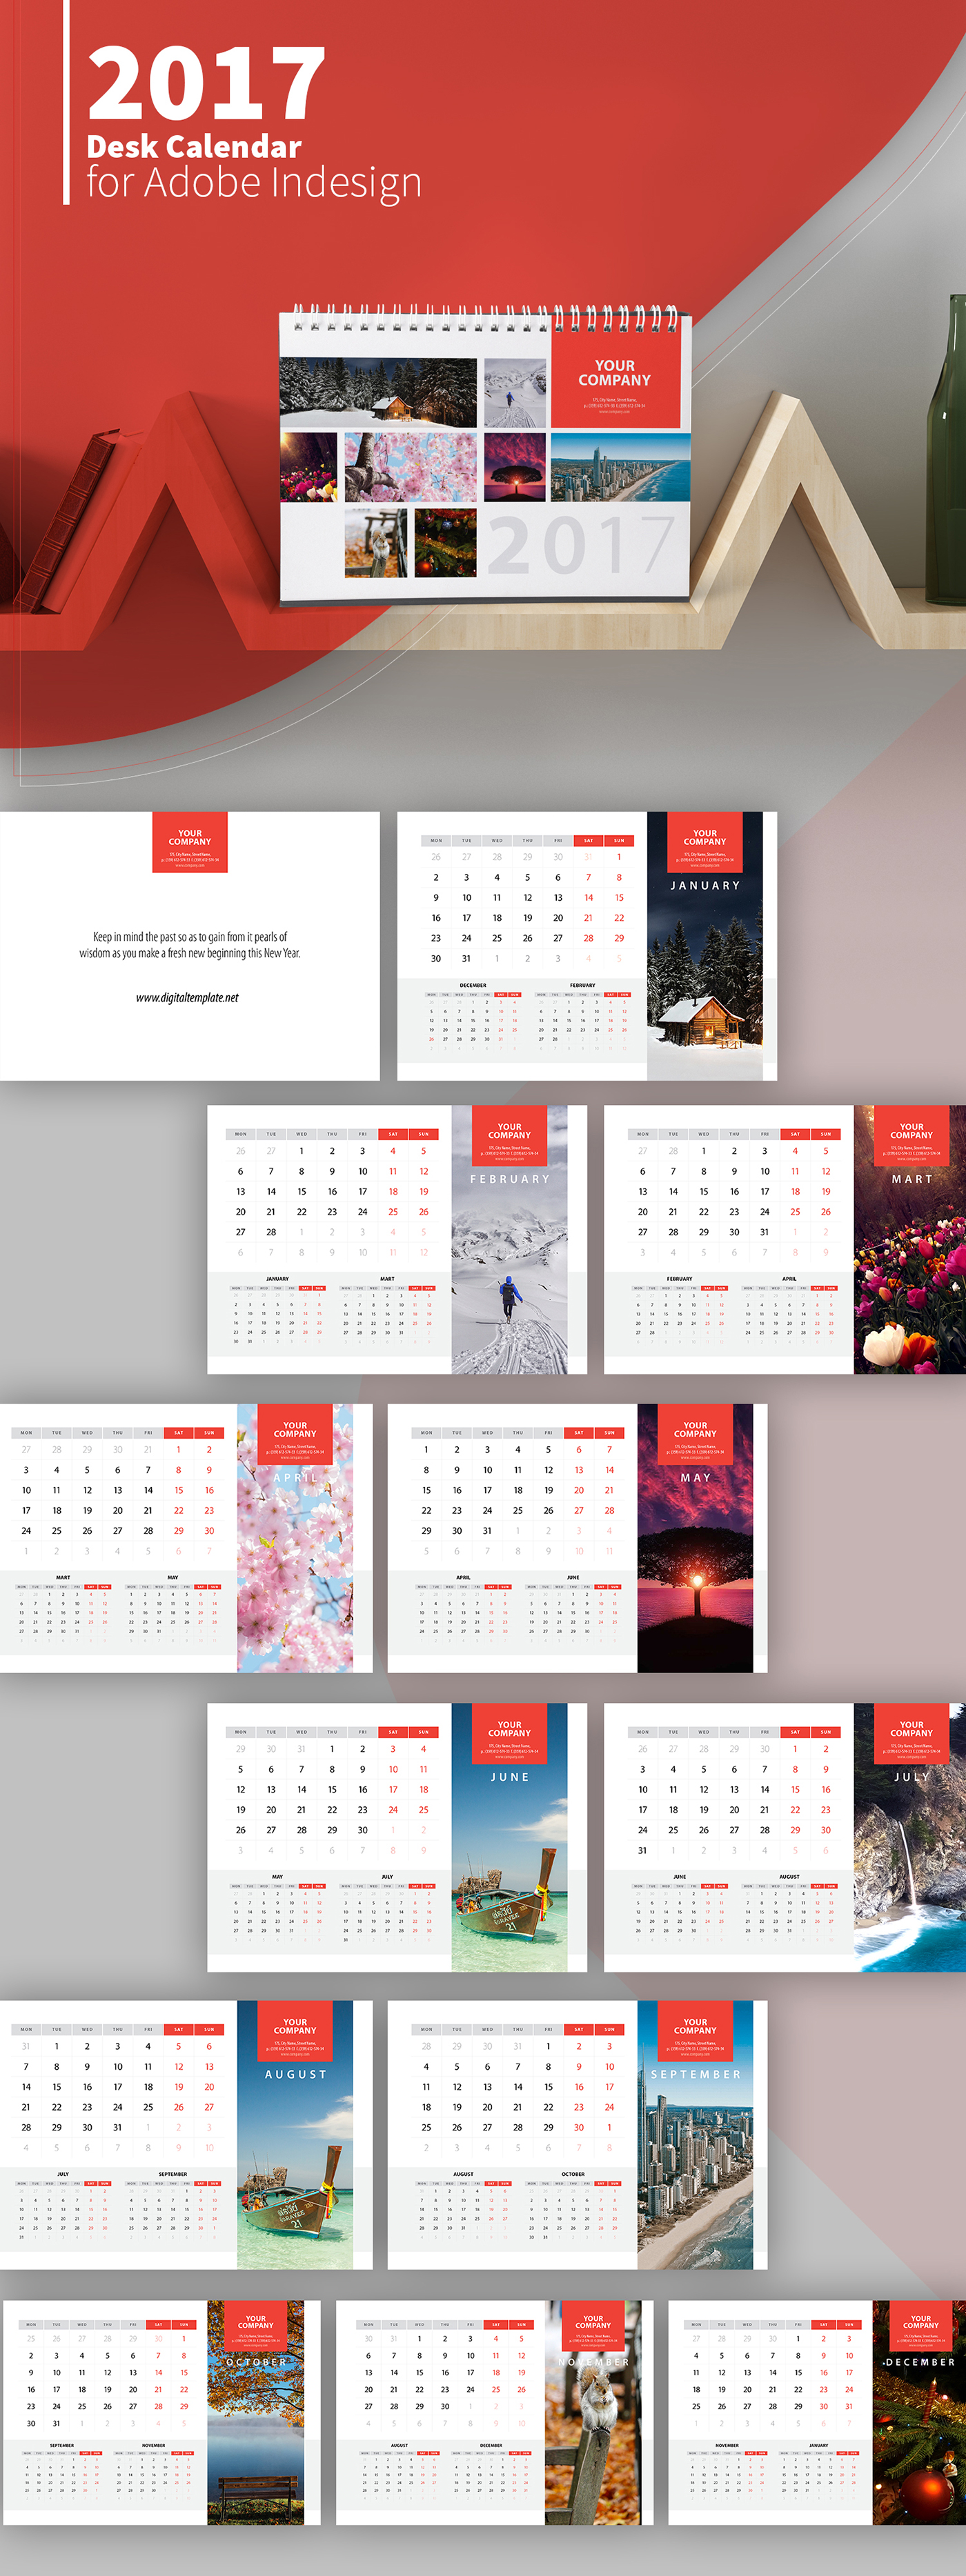 photoshop calendar template 2017